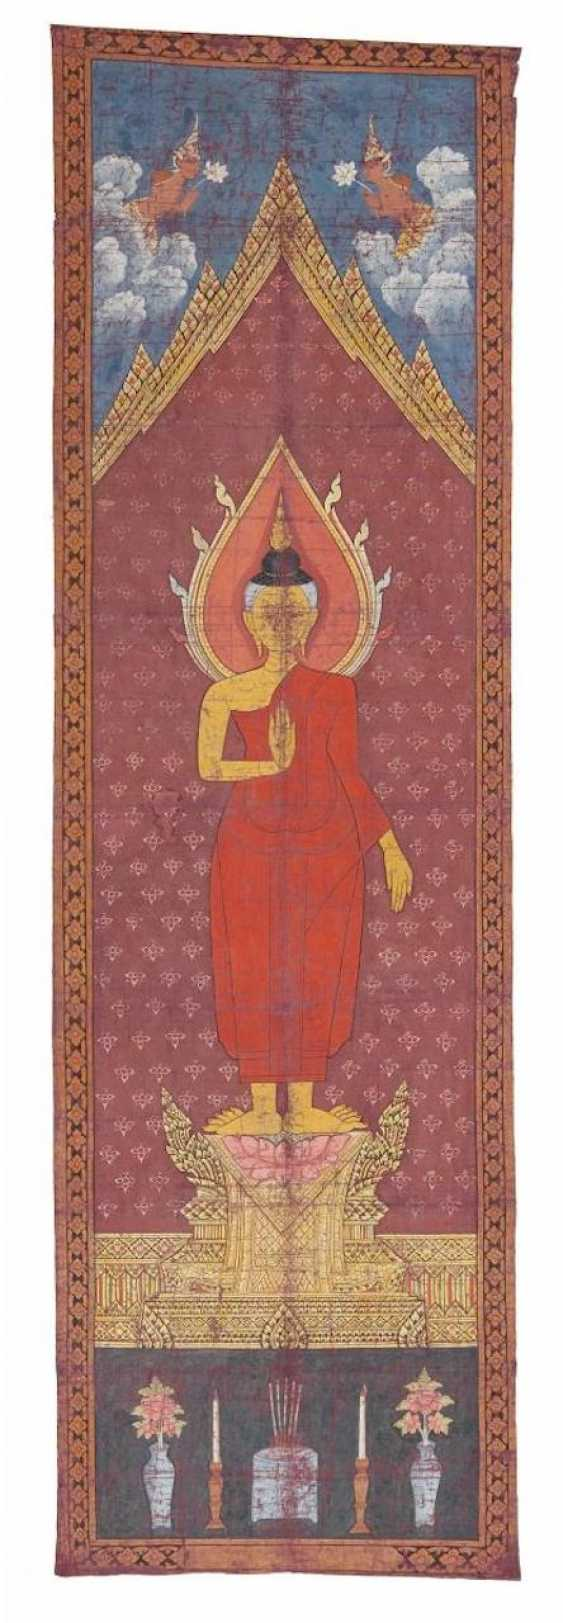 Rare long pa bai-hanging for a temple with Buddha - photo 1